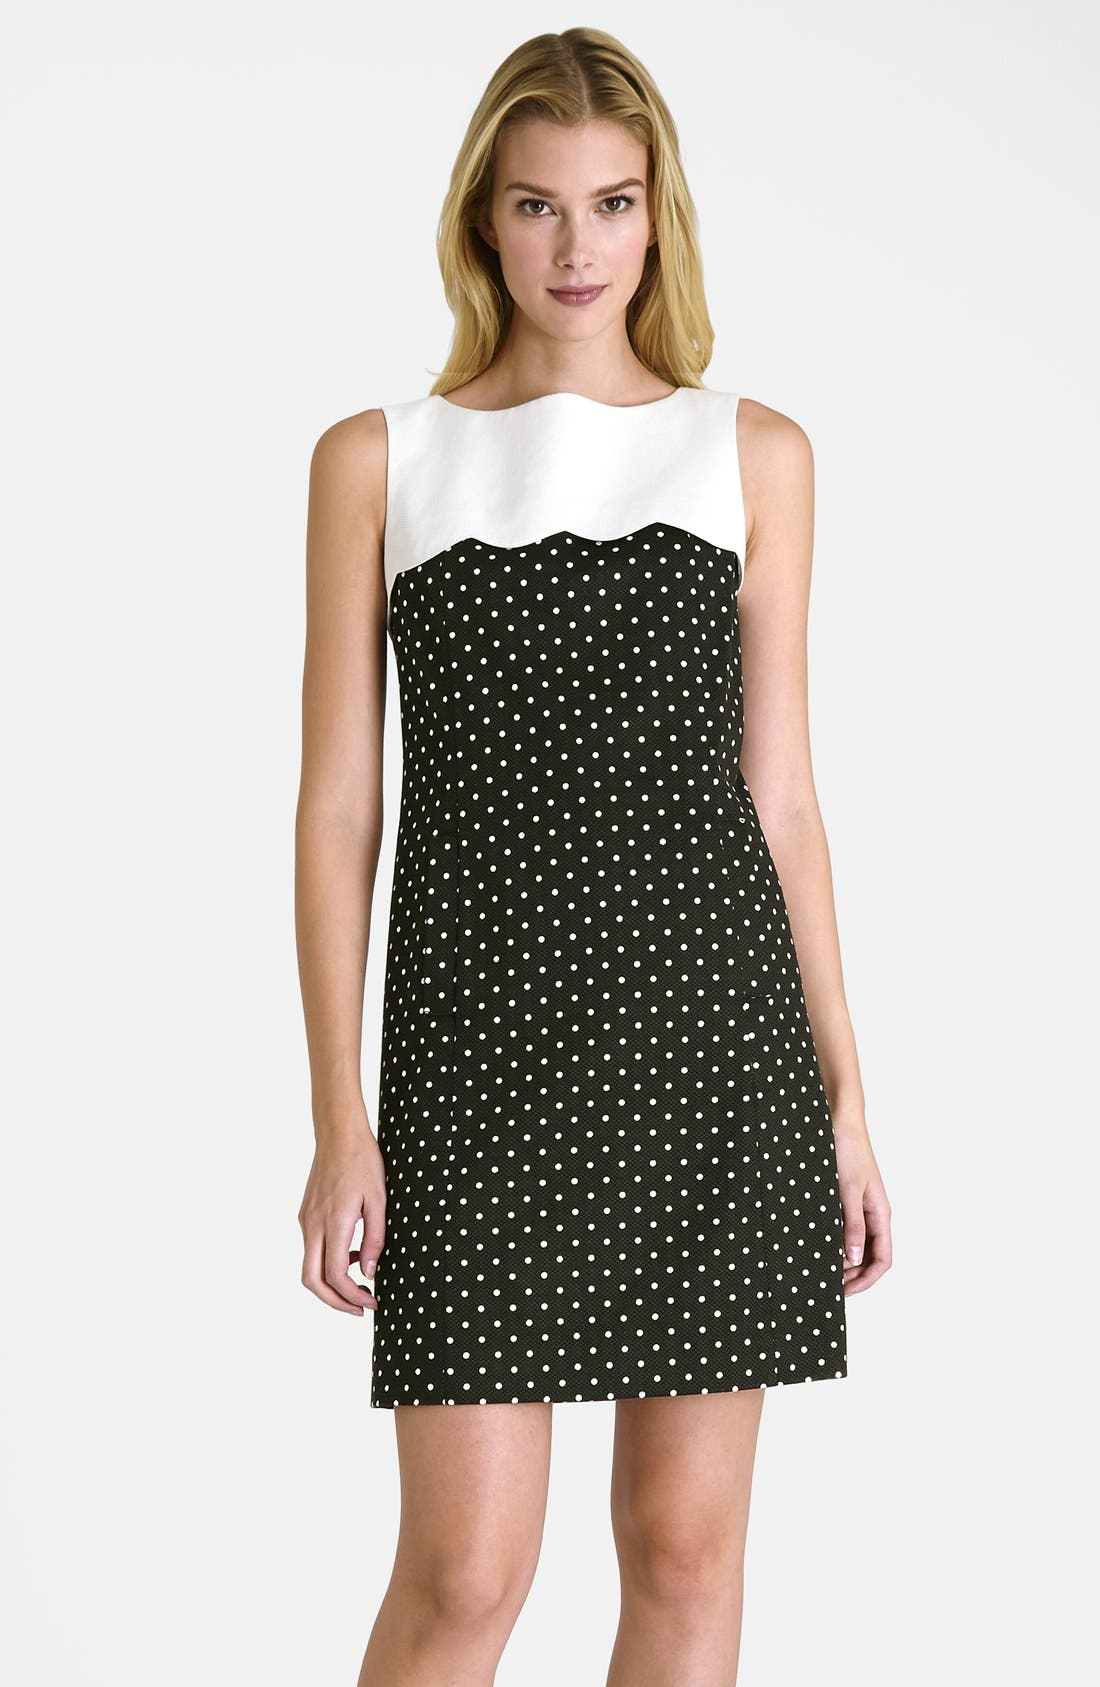 Alternate Image 1 Selected - Tahari Polka Dot Shift Dress (Petite)